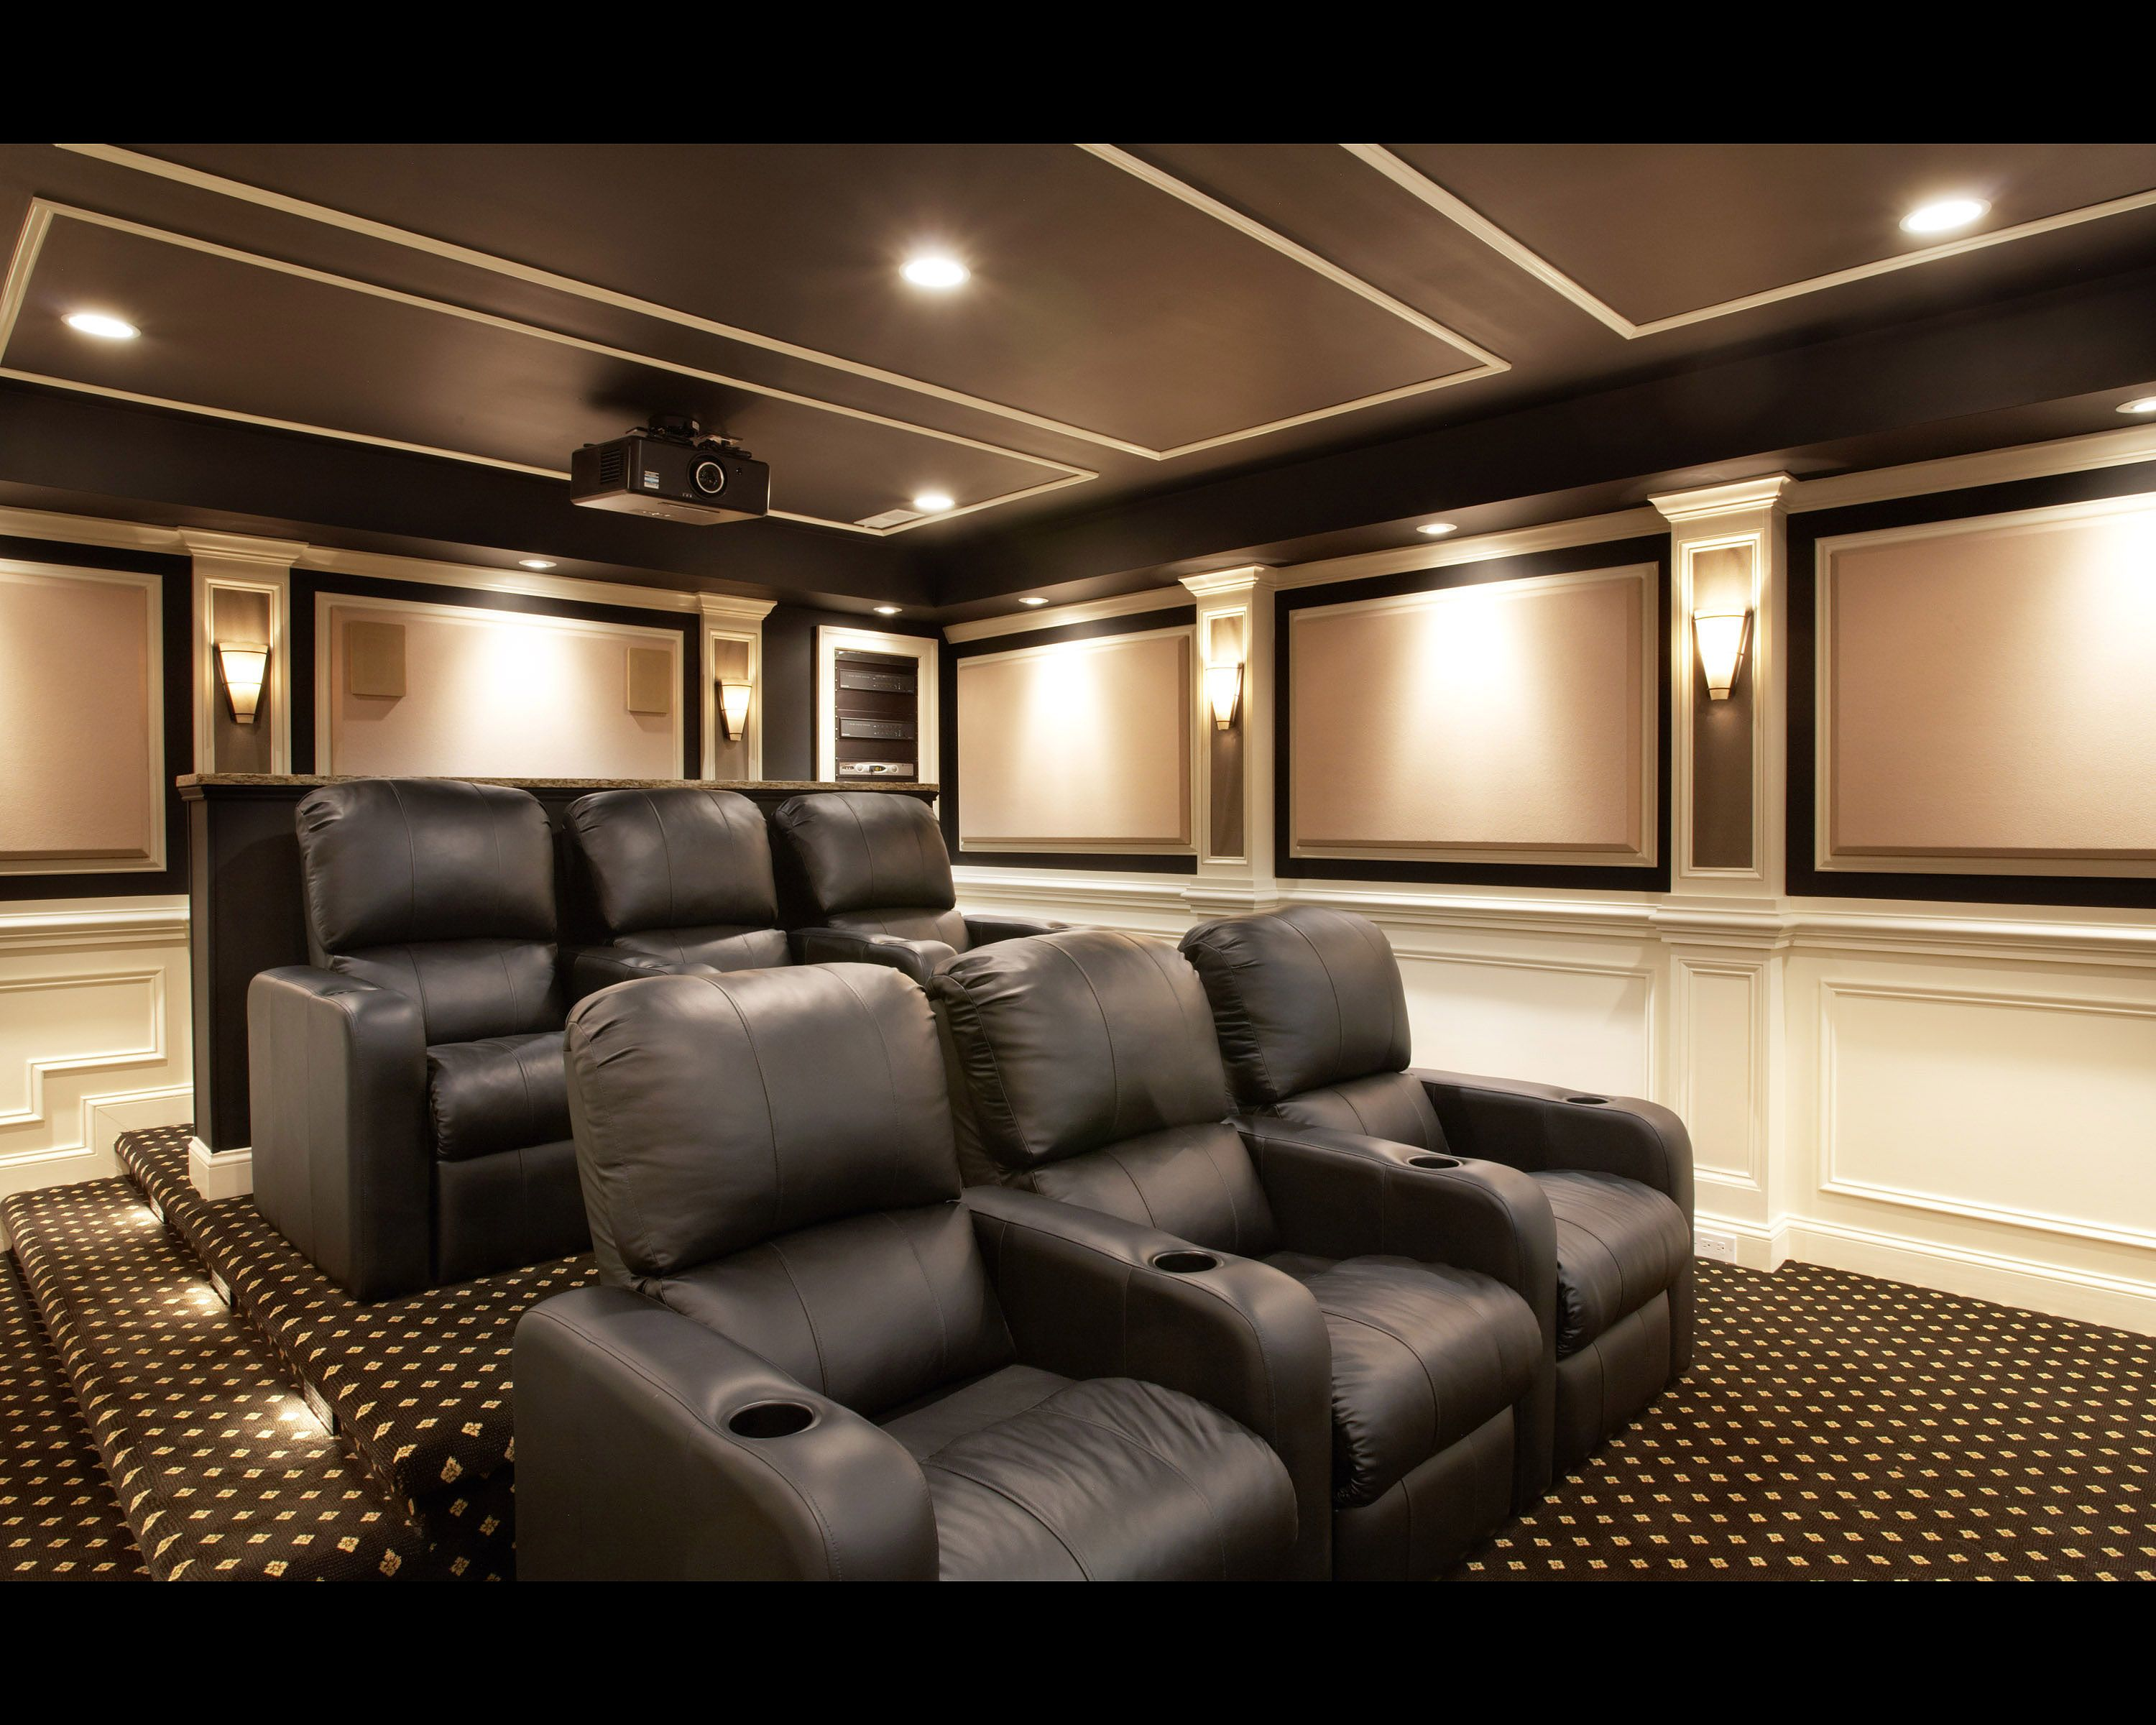 home theater design inside interior home theater design modern world furnishing designer - Home Theatre Design